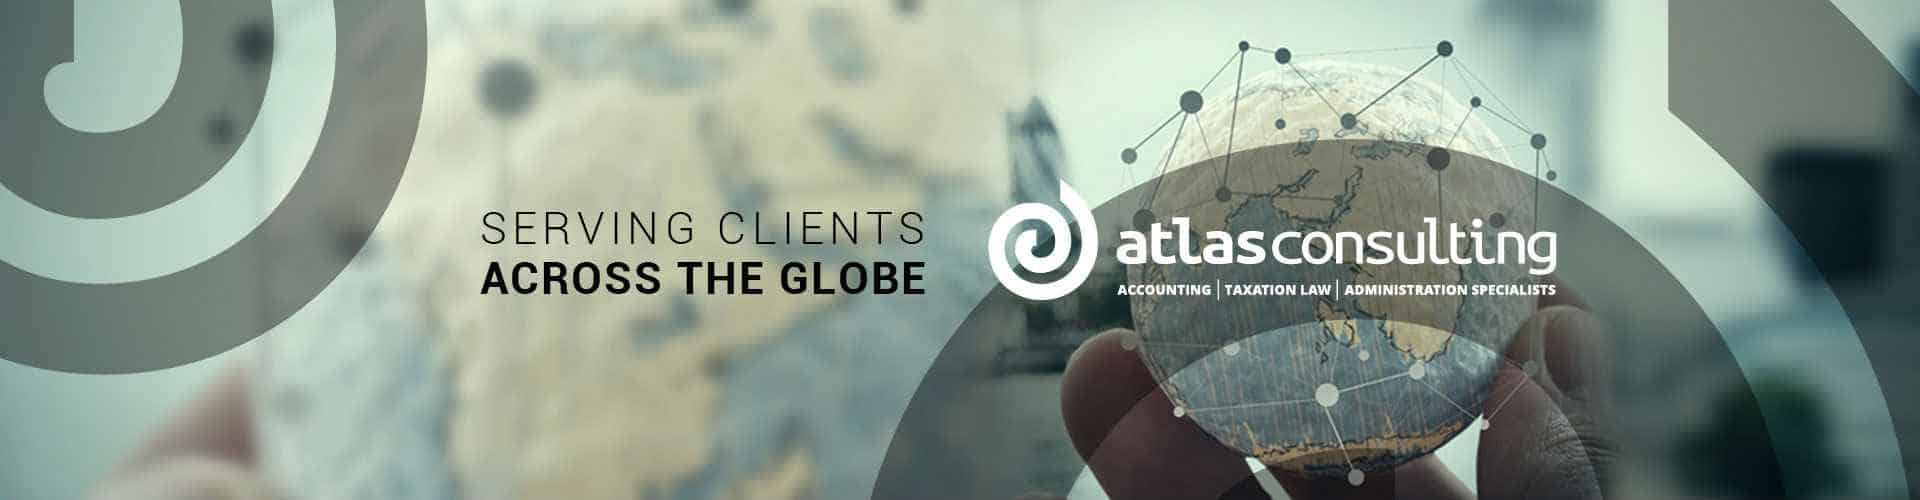 atlas consulting international network